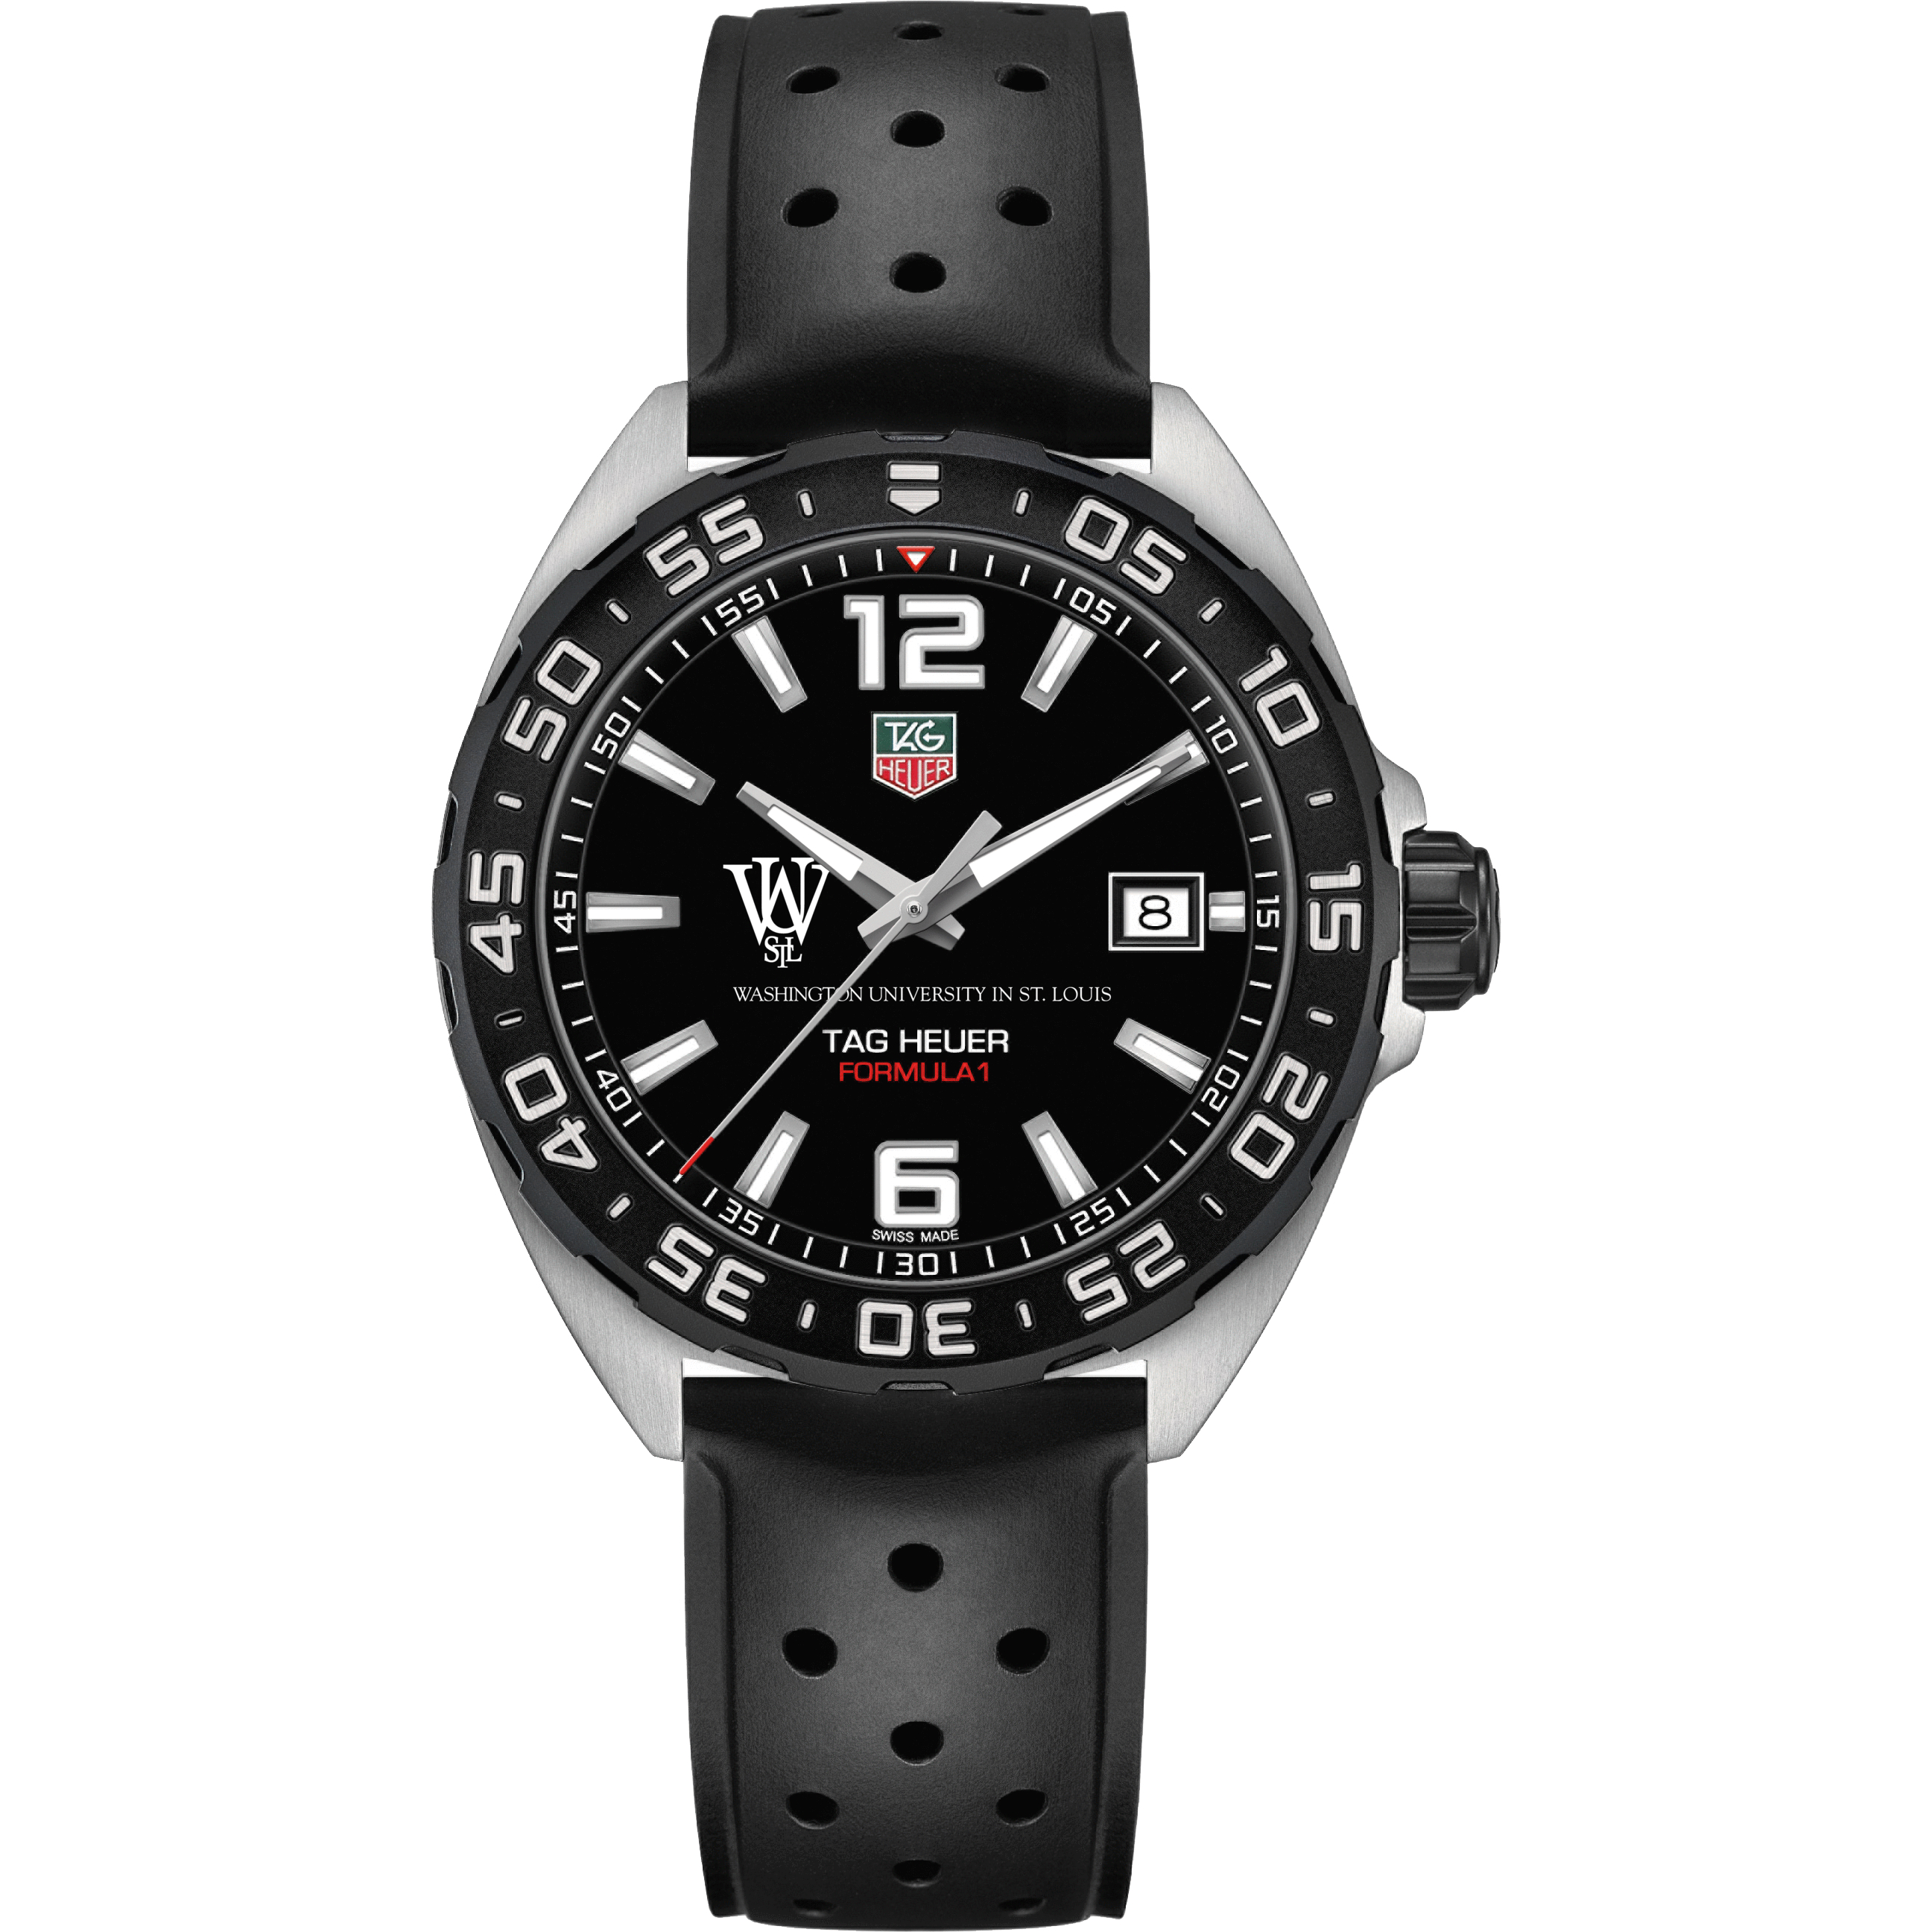 WUSTL Men's TAG Heuer Formula 1 with Black Dial - Image 2